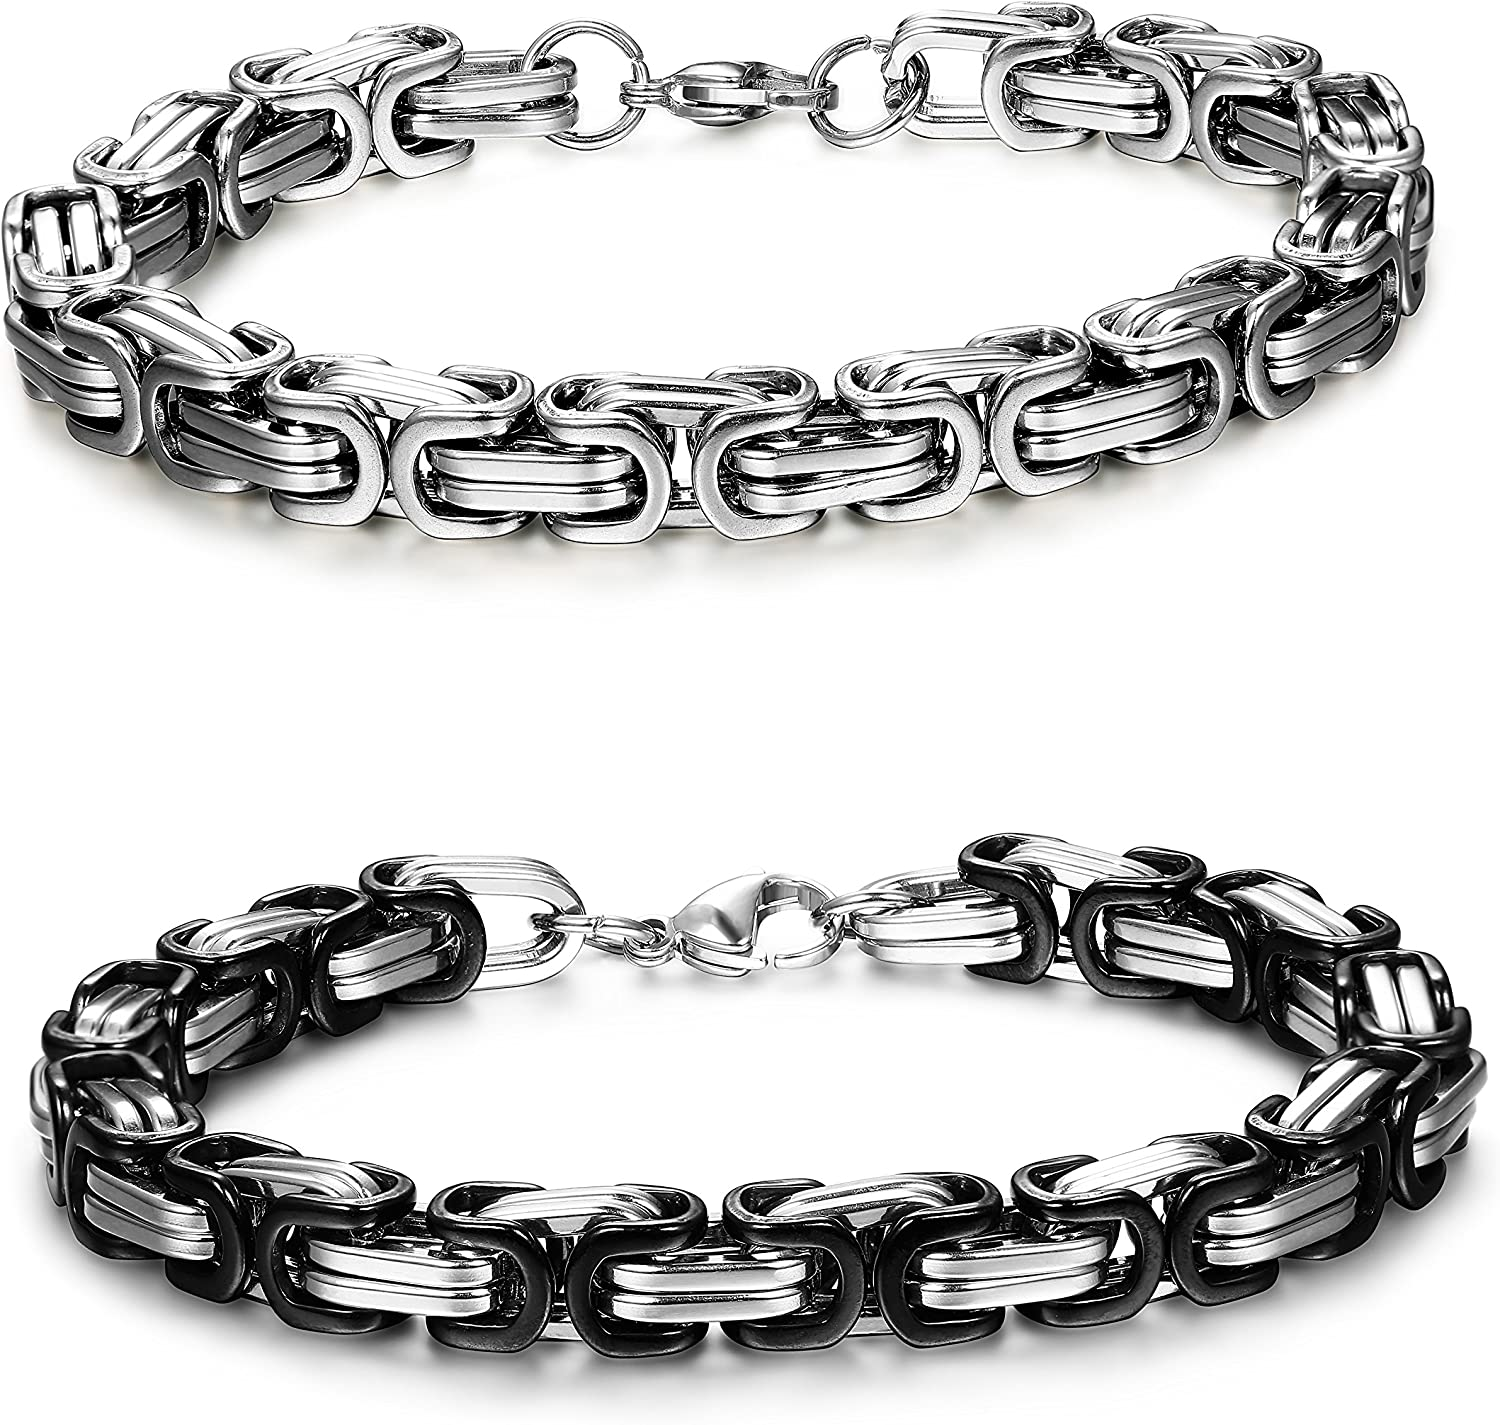 FIBO STEEL 2 Pcs 8MM Stainless Steel Chain Link Bracelets for Men Byzantine Bracelets,8.0-9.1 inches